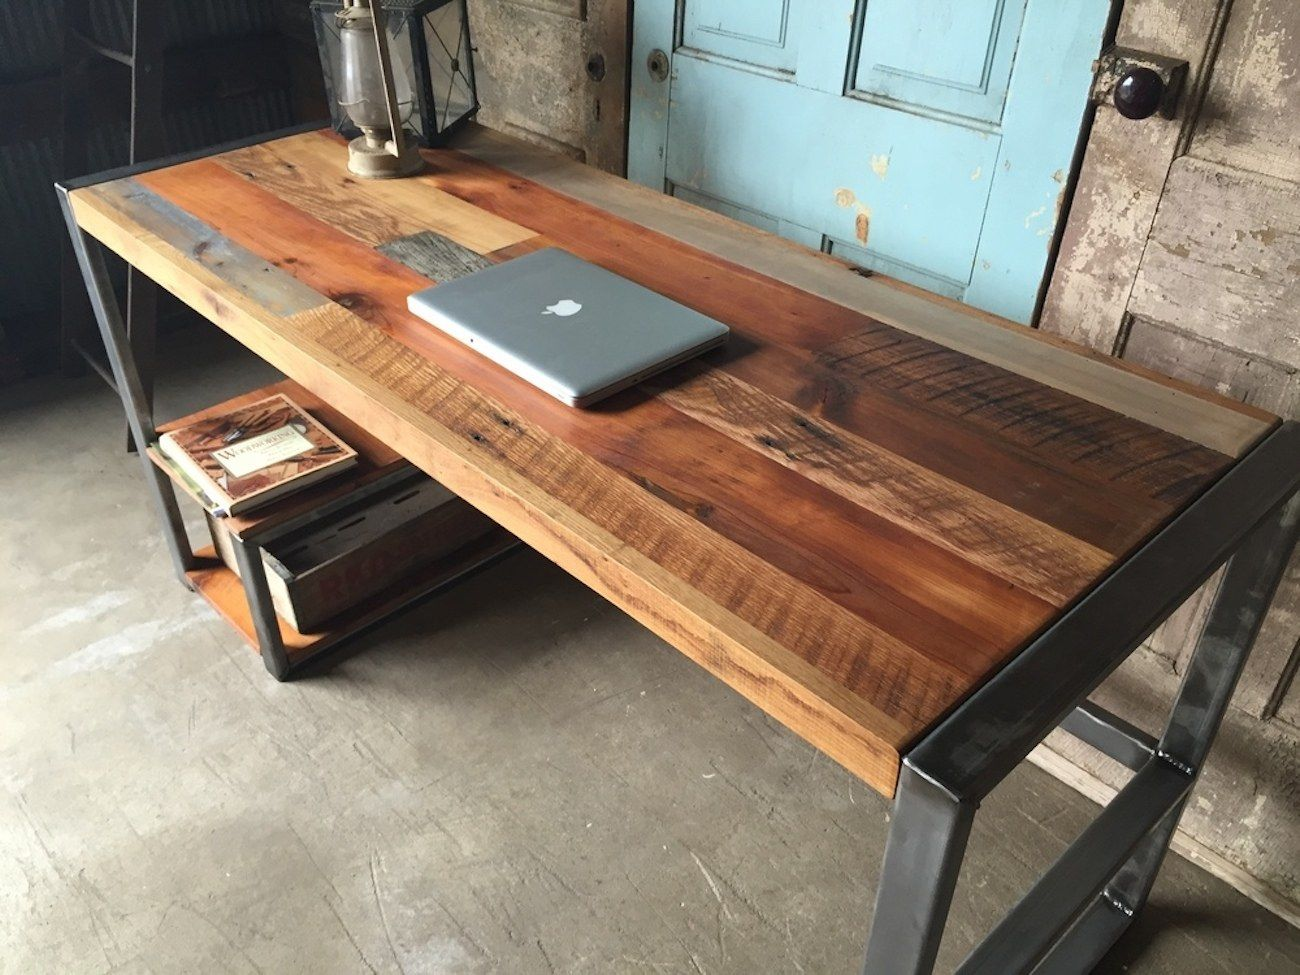 Merveilleux Reclaimed Wood Writing Desk   Design Desk Ideas Check More At  Http://www.gameintown.com/reclaimed Wood Writing Desk/